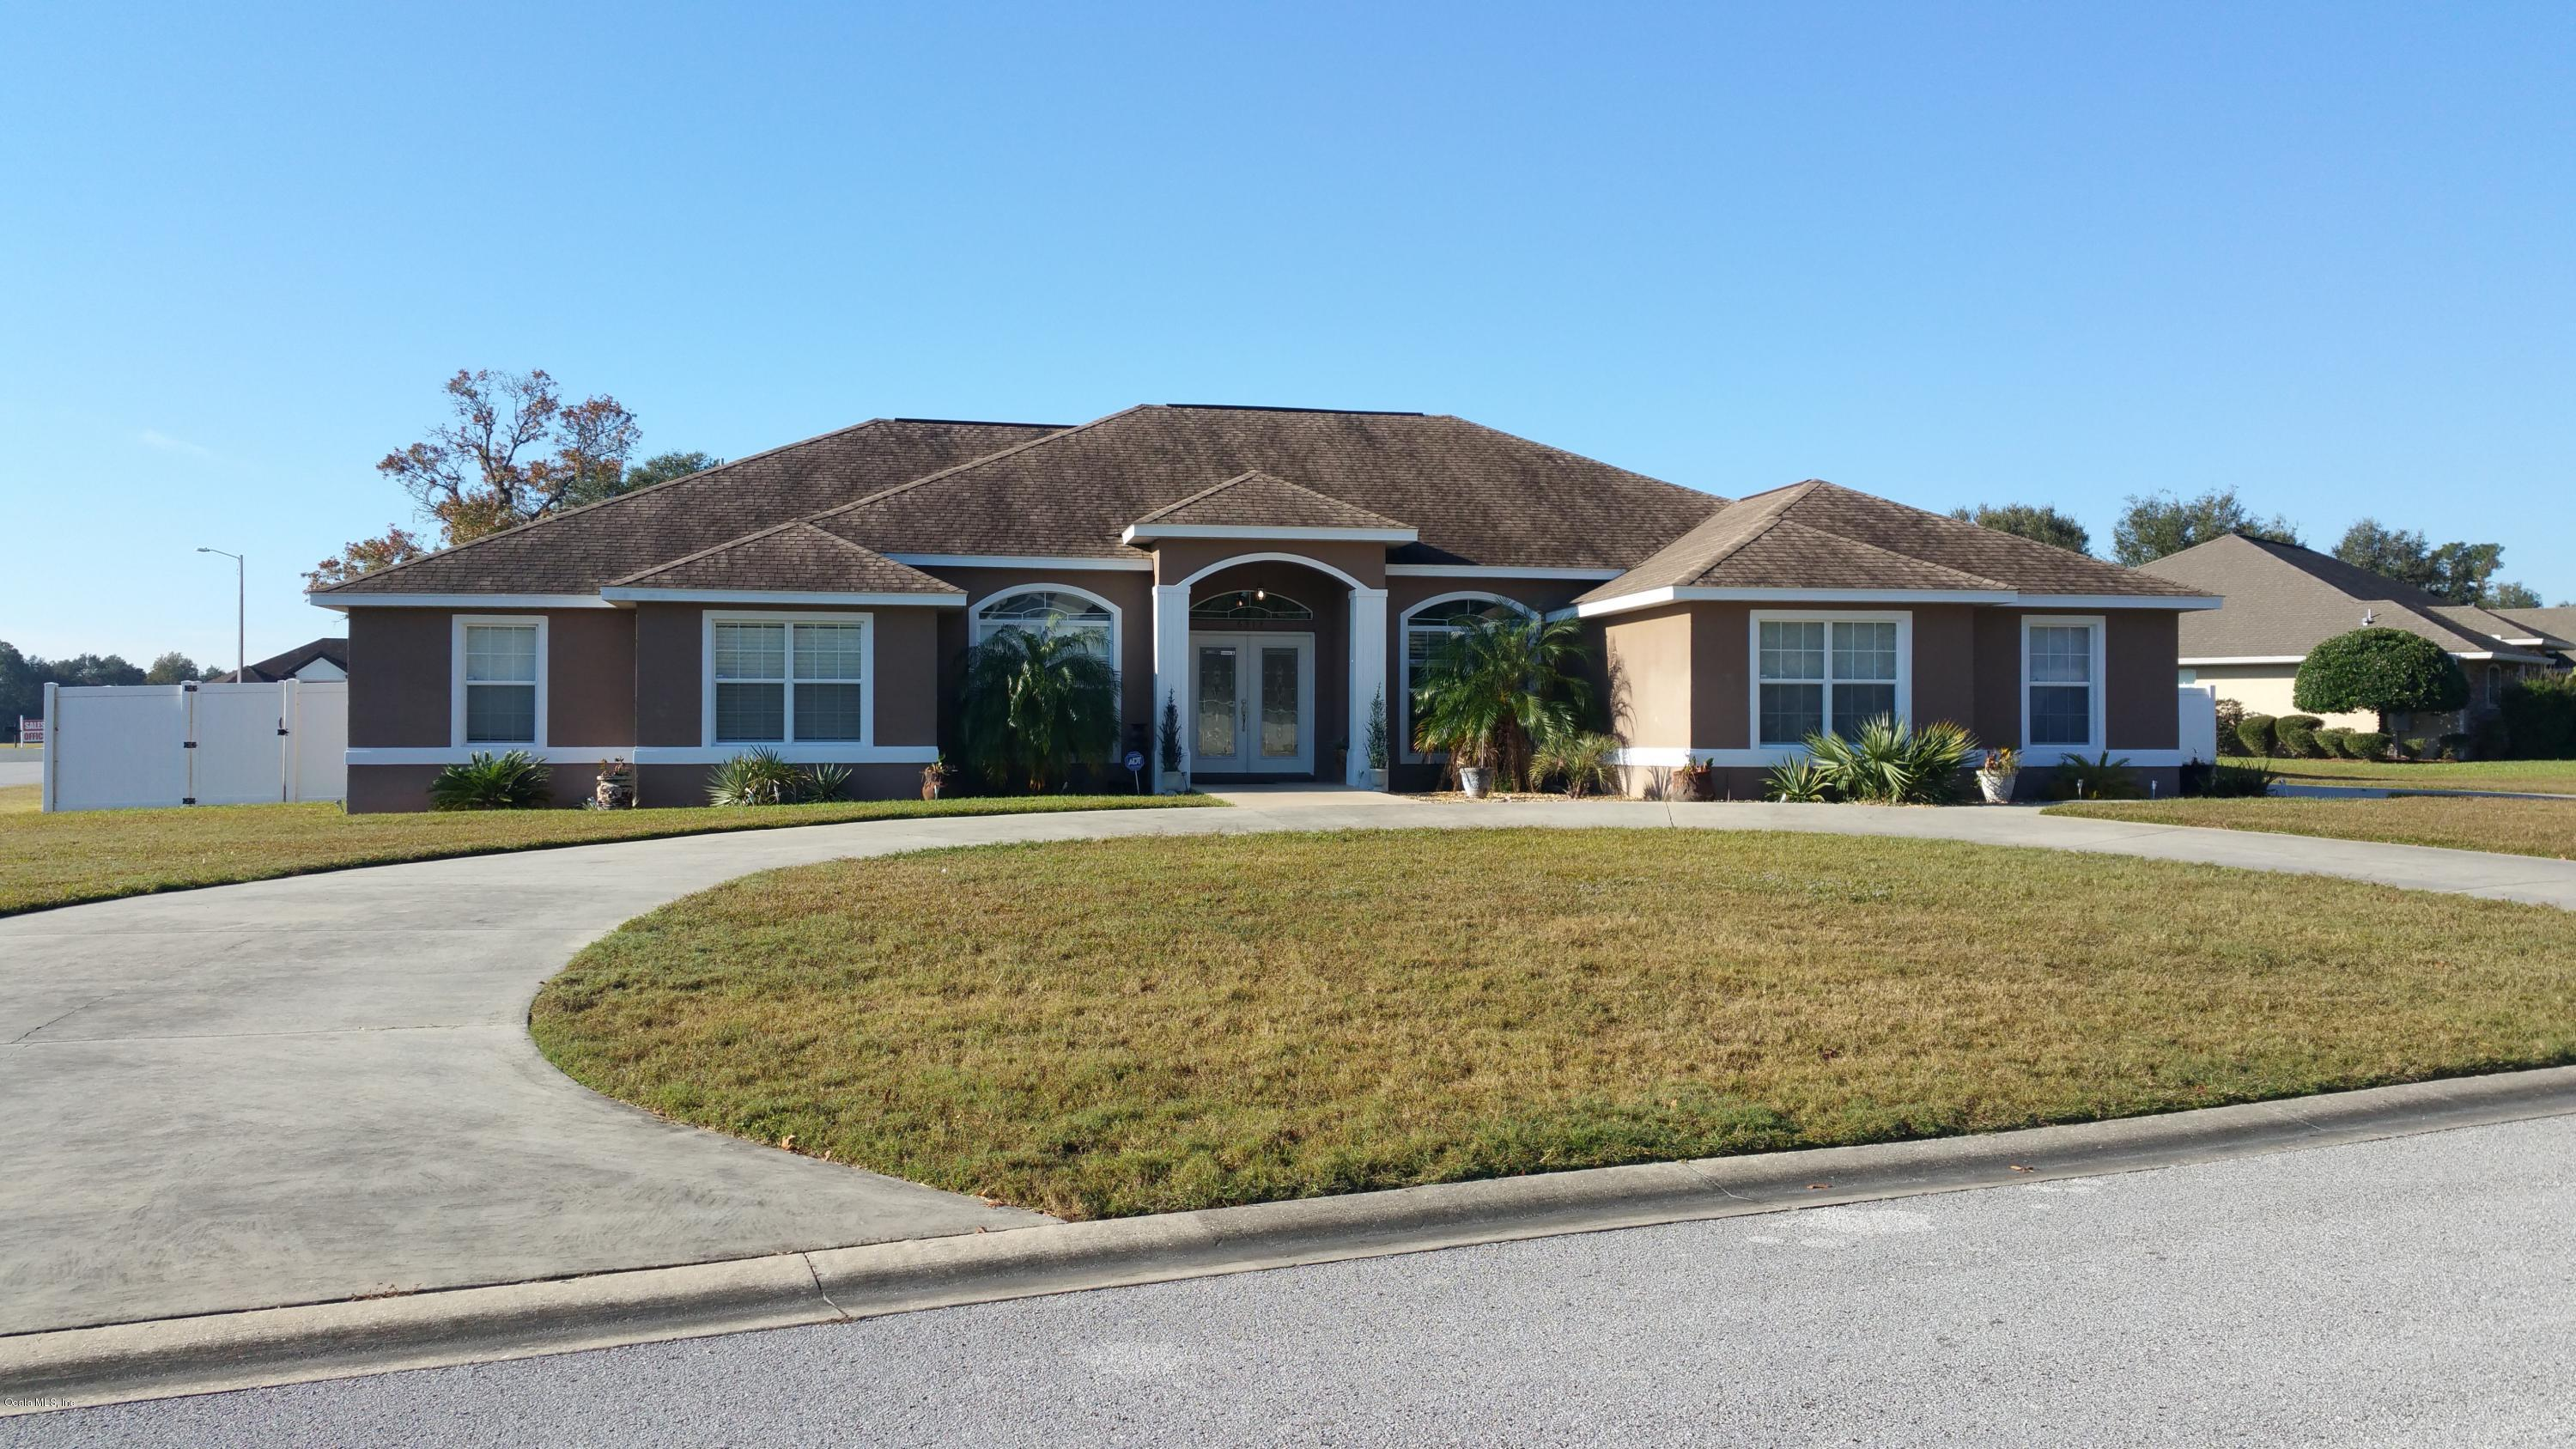 6312 SE 10TH PLACE, OCALA, FL 34472